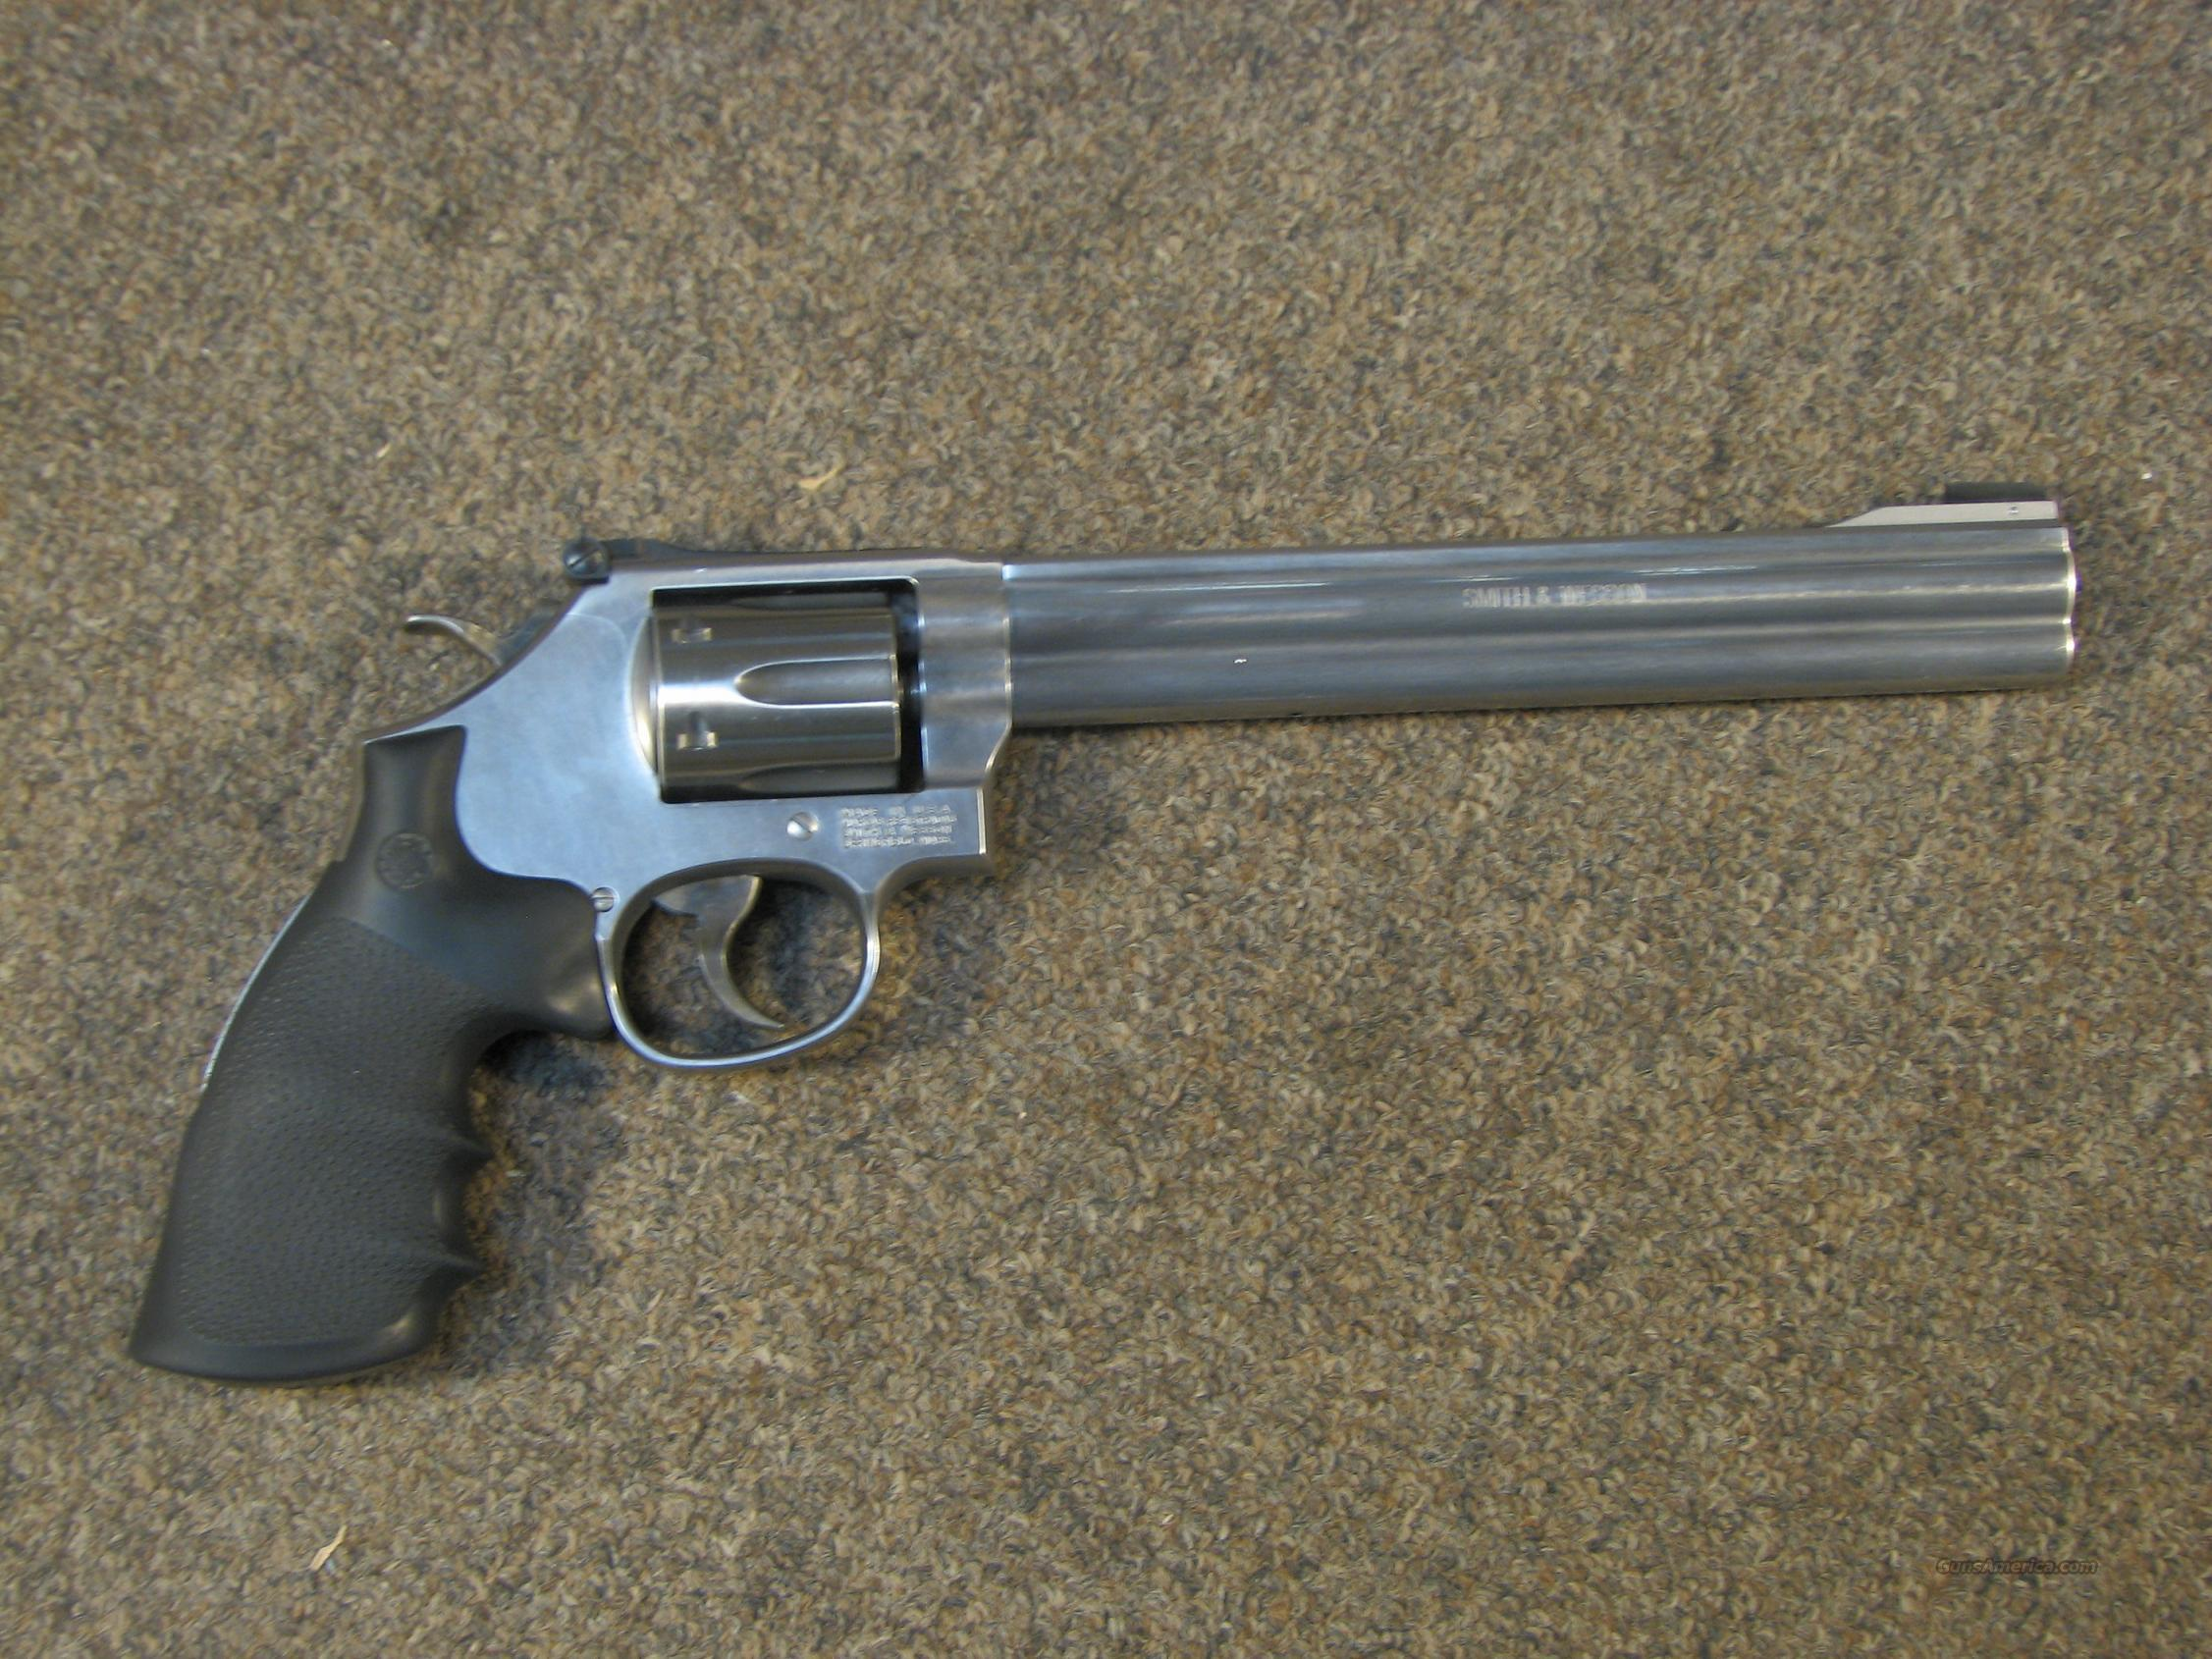 SMITH & WESSON 647 .17 HMR - EXCELLENT CONDITION w/ BOX!  Guns > Pistols > Smith & Wesson Revolvers > Full Frame Revolver